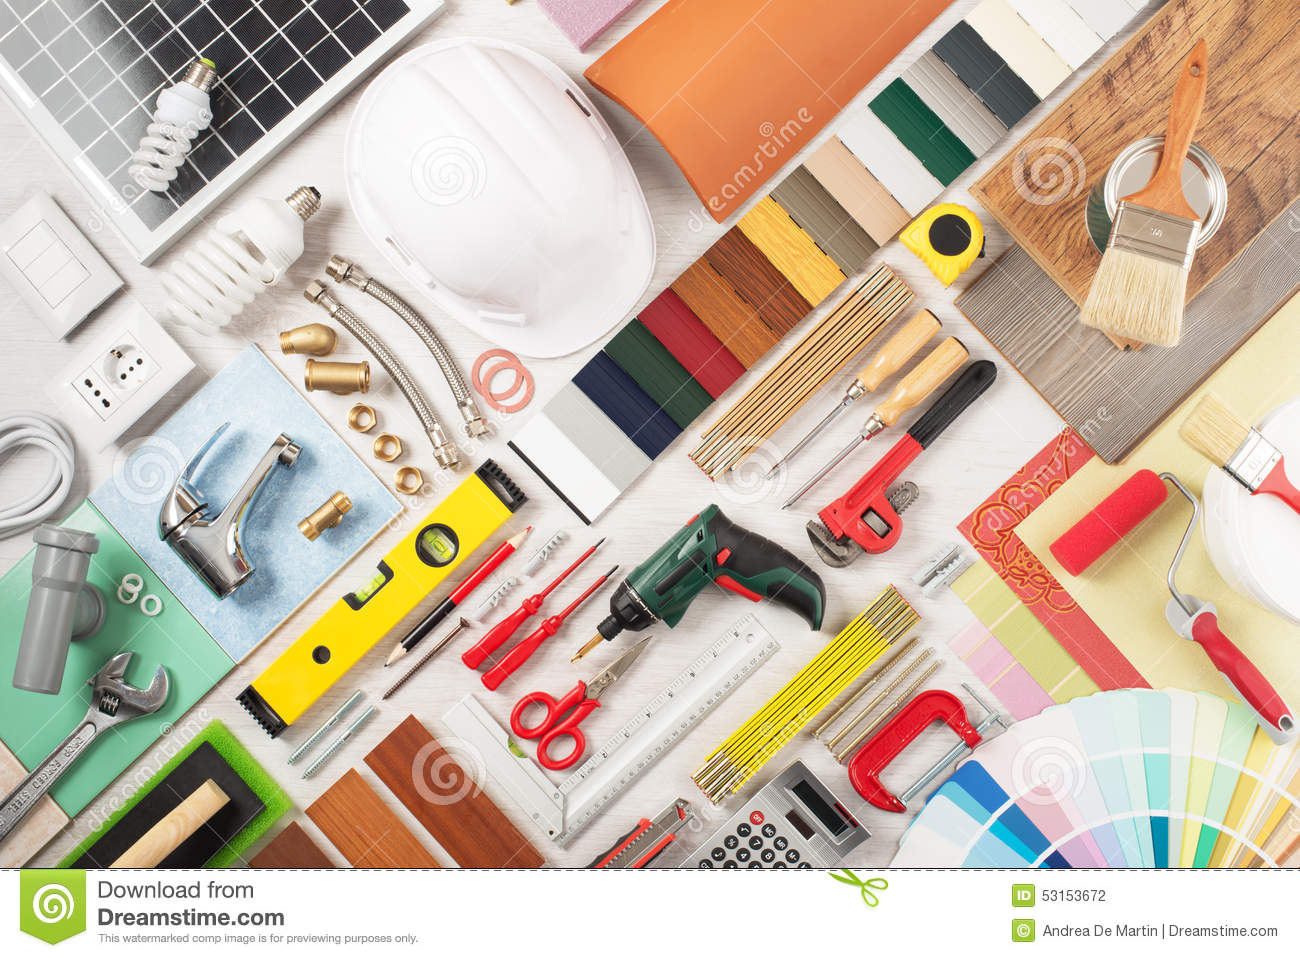 Diy and home renovation stock photo image 53153672 for Home renovation builders